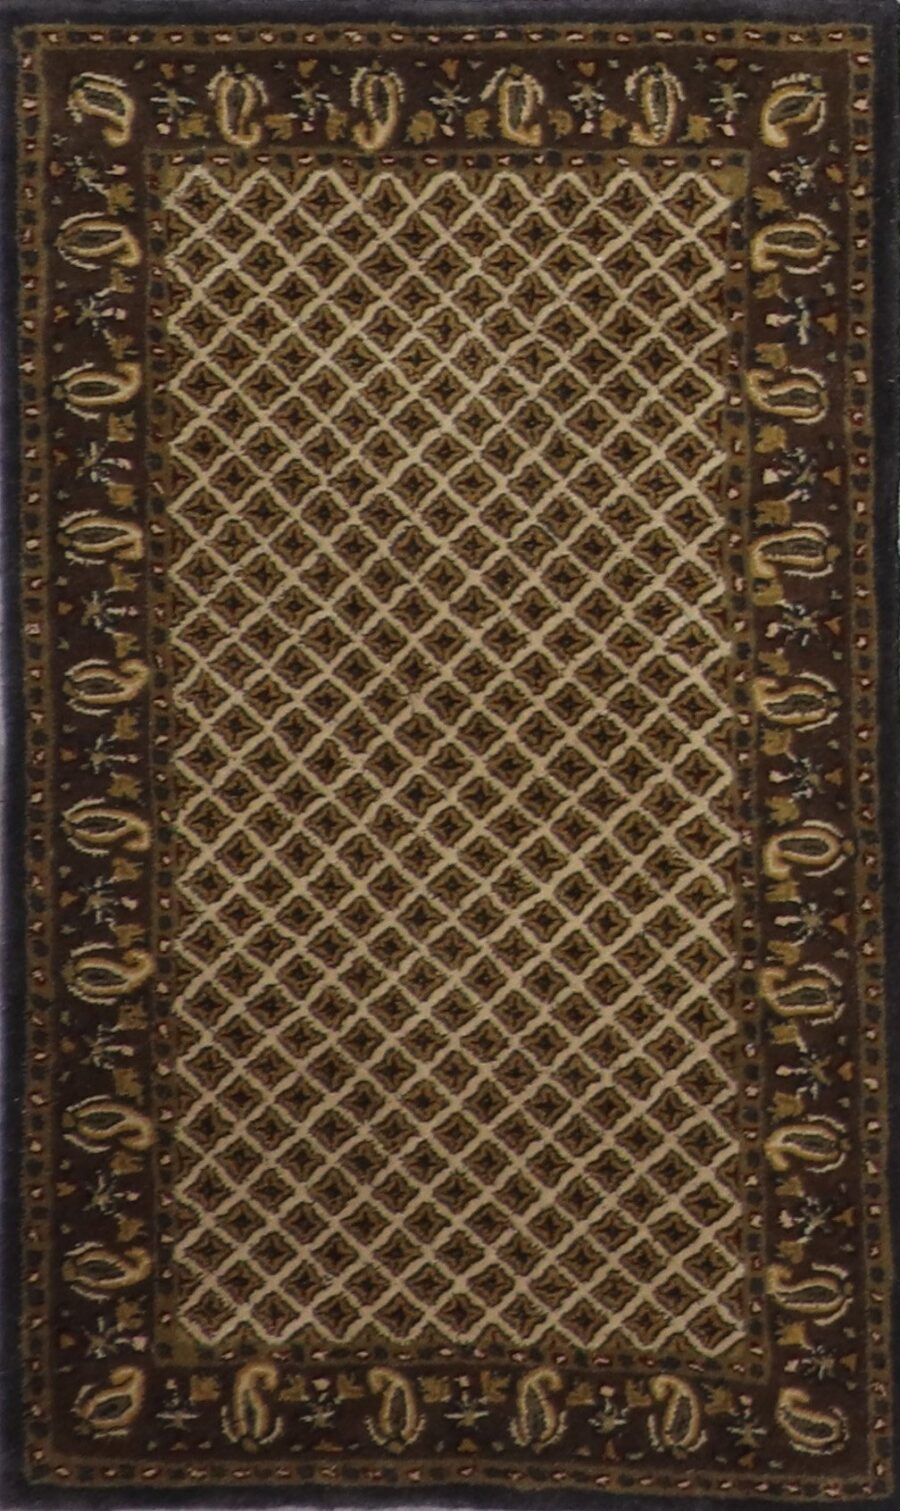 """3'x4'11"""" Decorative Ivory Wool Hand-Tufted Rug - Direct Rug Import   Rugs in Chicago, Indiana,South Bend,Granger"""